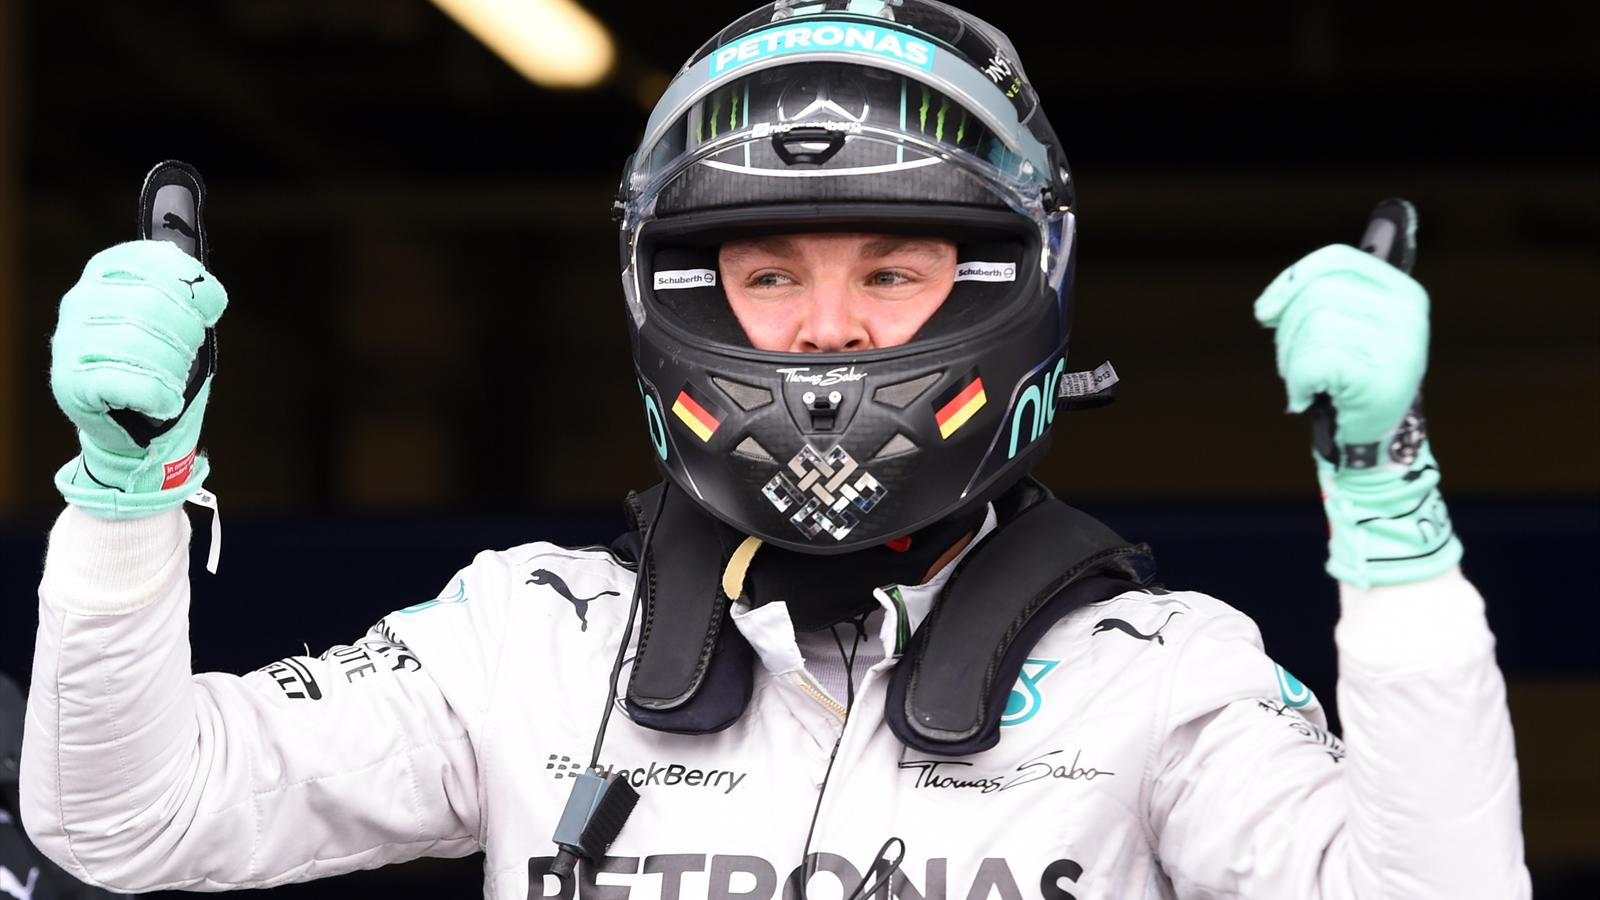 Nico Rosberg (Mercedes) - GP of Great Britain 2014